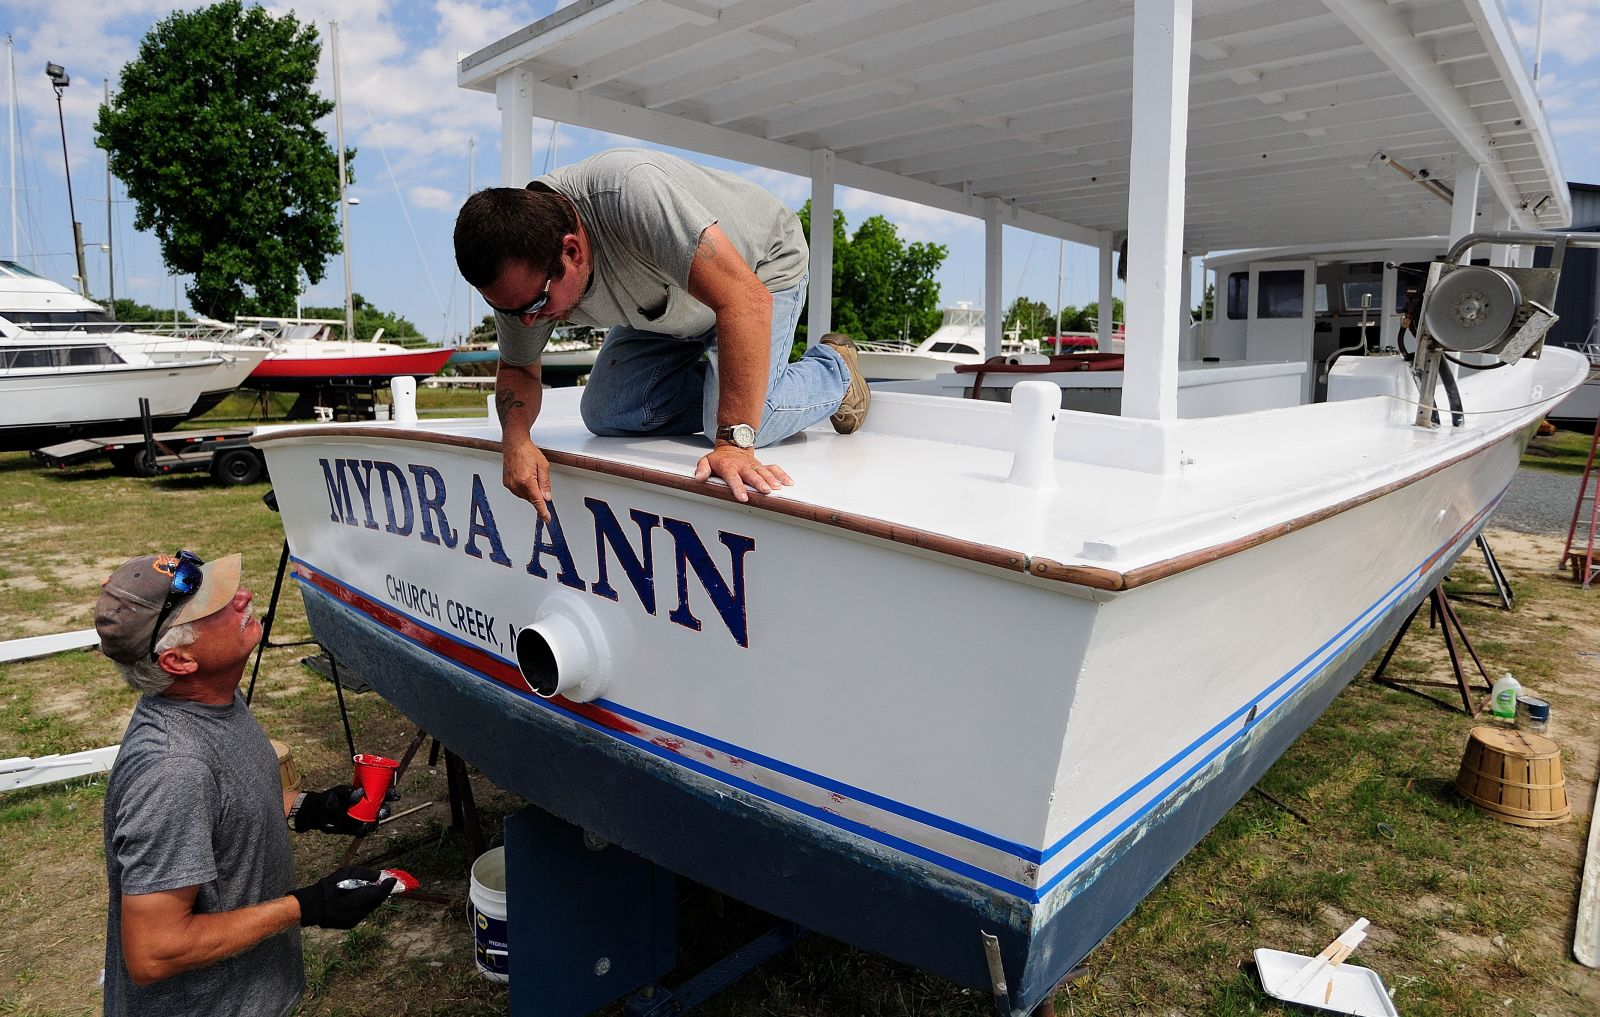 On the hard prepping a crab boat maryland sea grant for Outboard motors for sale maryland